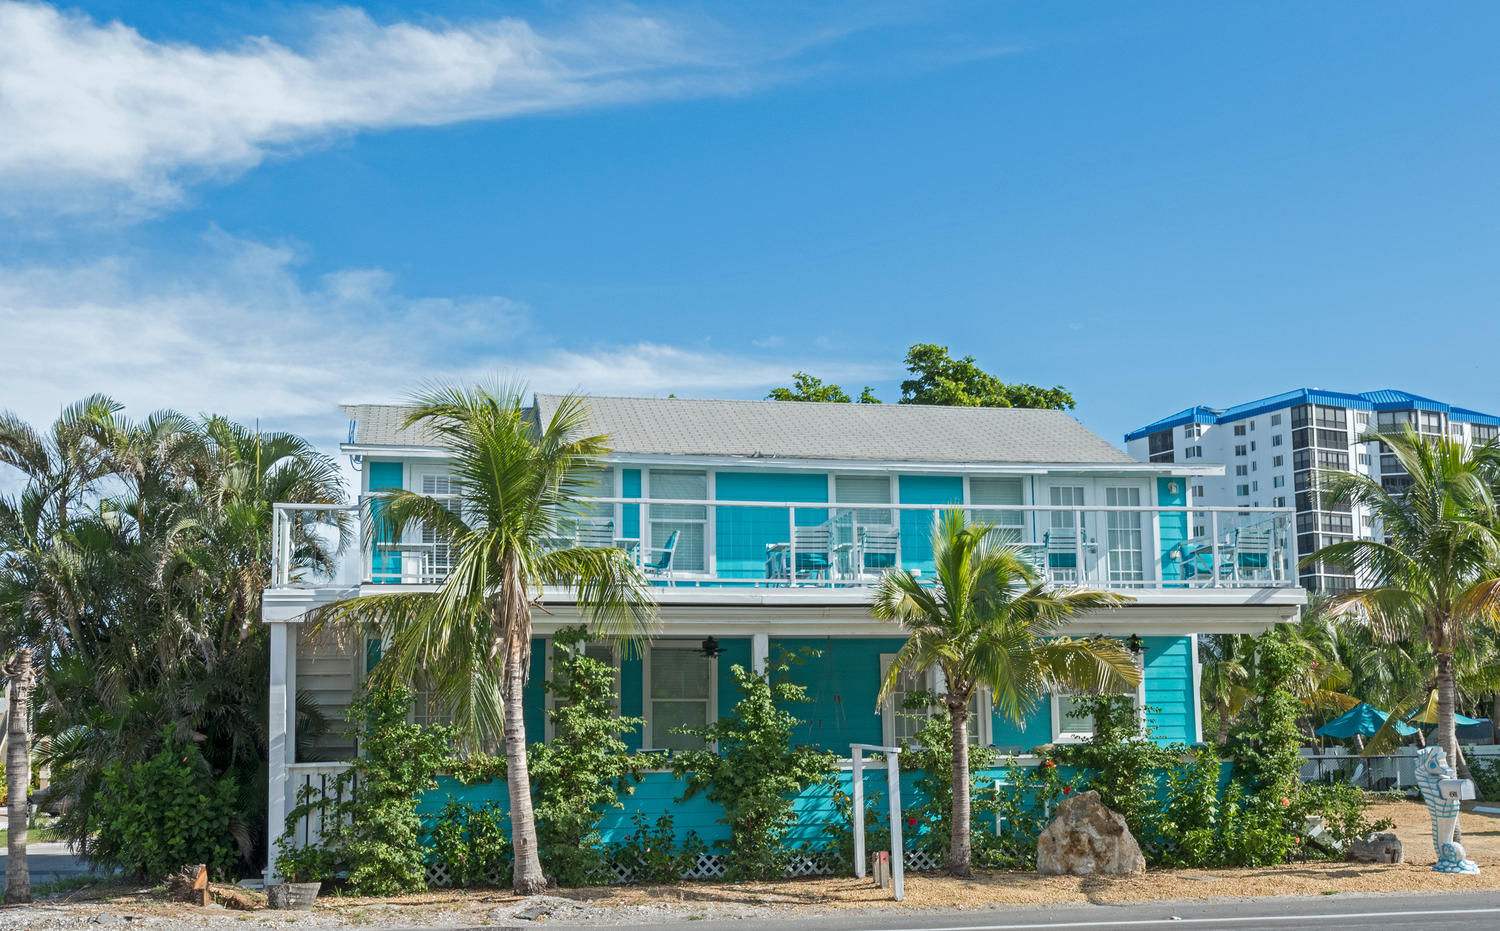 MAIN BUILDING, WE ARE JUST ACROSS THE STREET FROM THE BEACH!